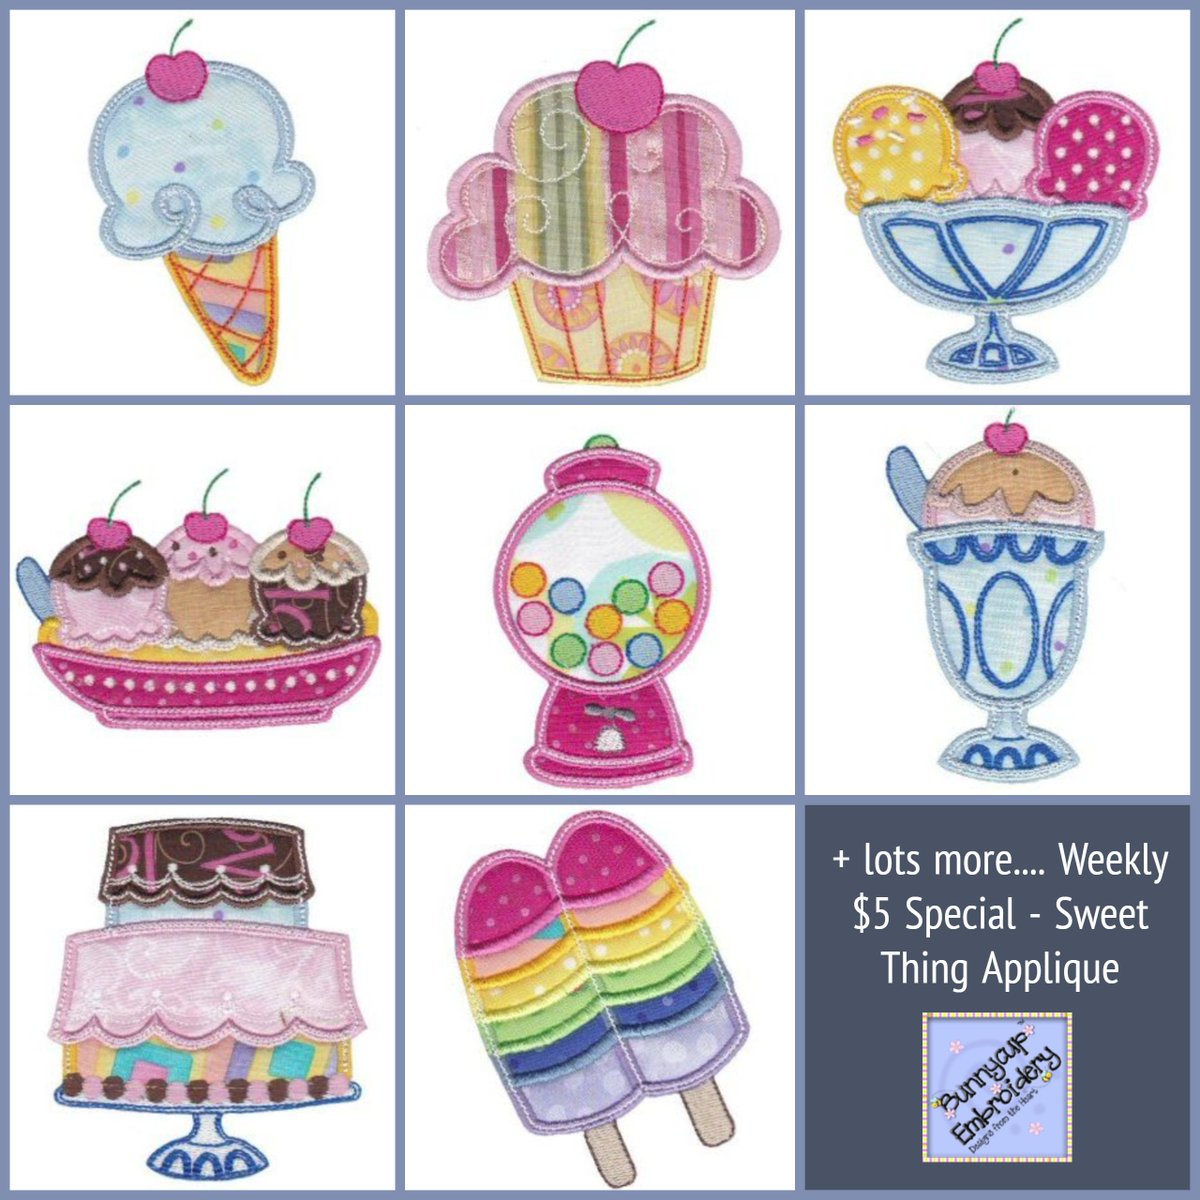 Bunnycup Embroidery On Twitter Weekly 5 Special Sweet Thing